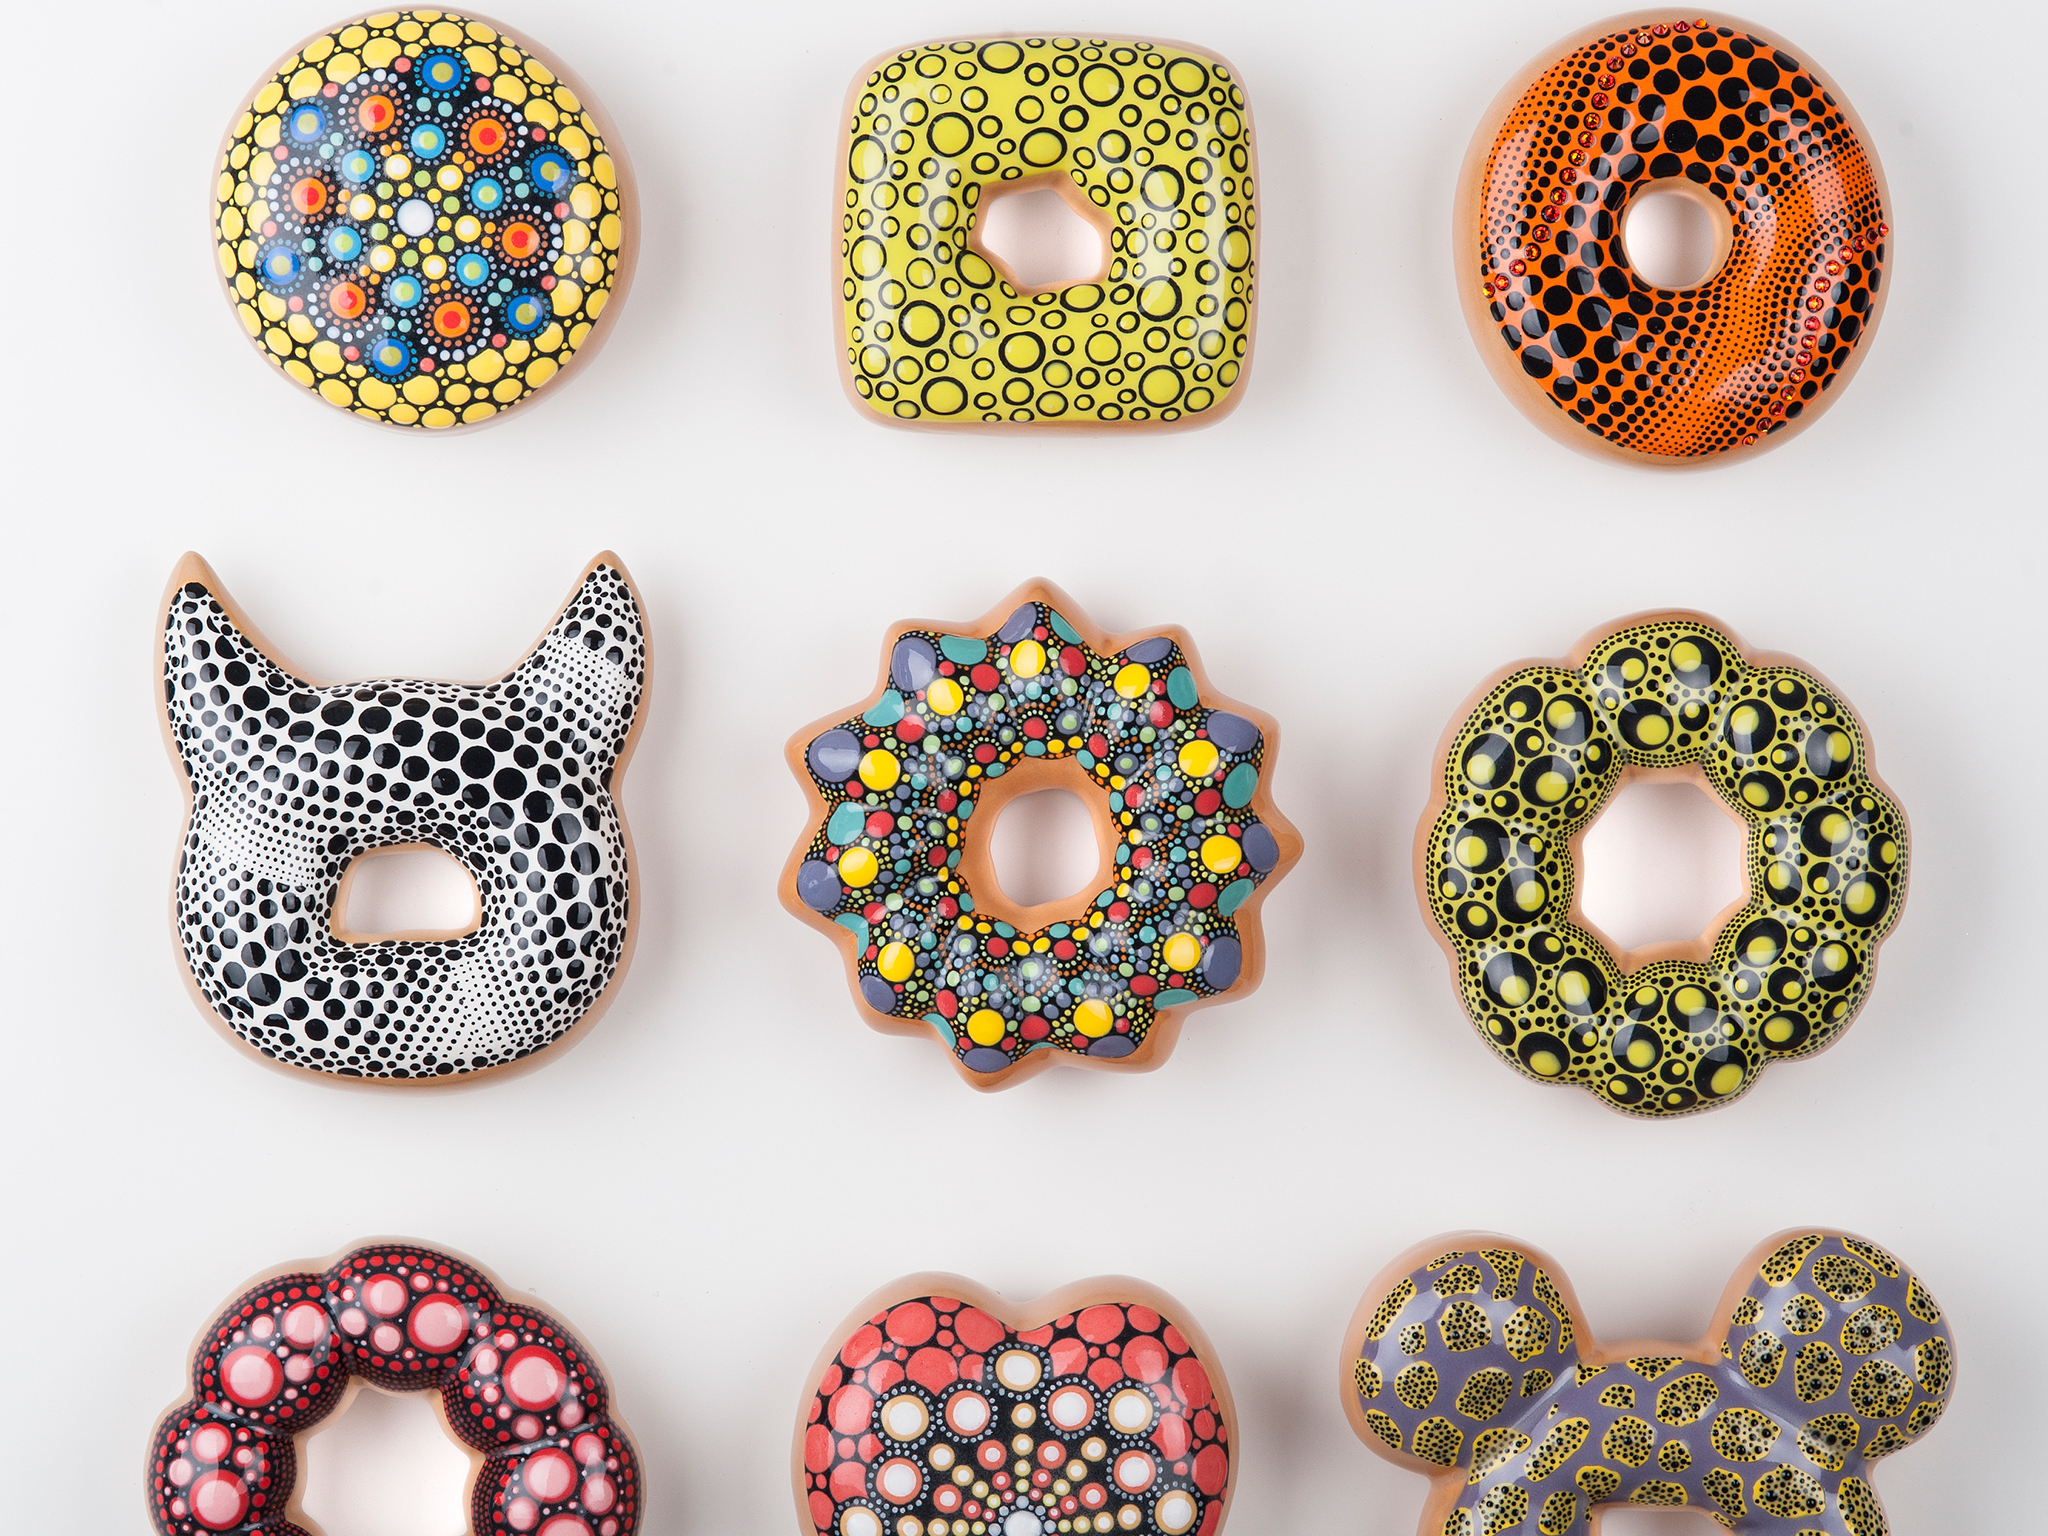 South Korean ceramicist Jae Yong Kim creates deliciously glazed donuts out of clay, glitter, and swa